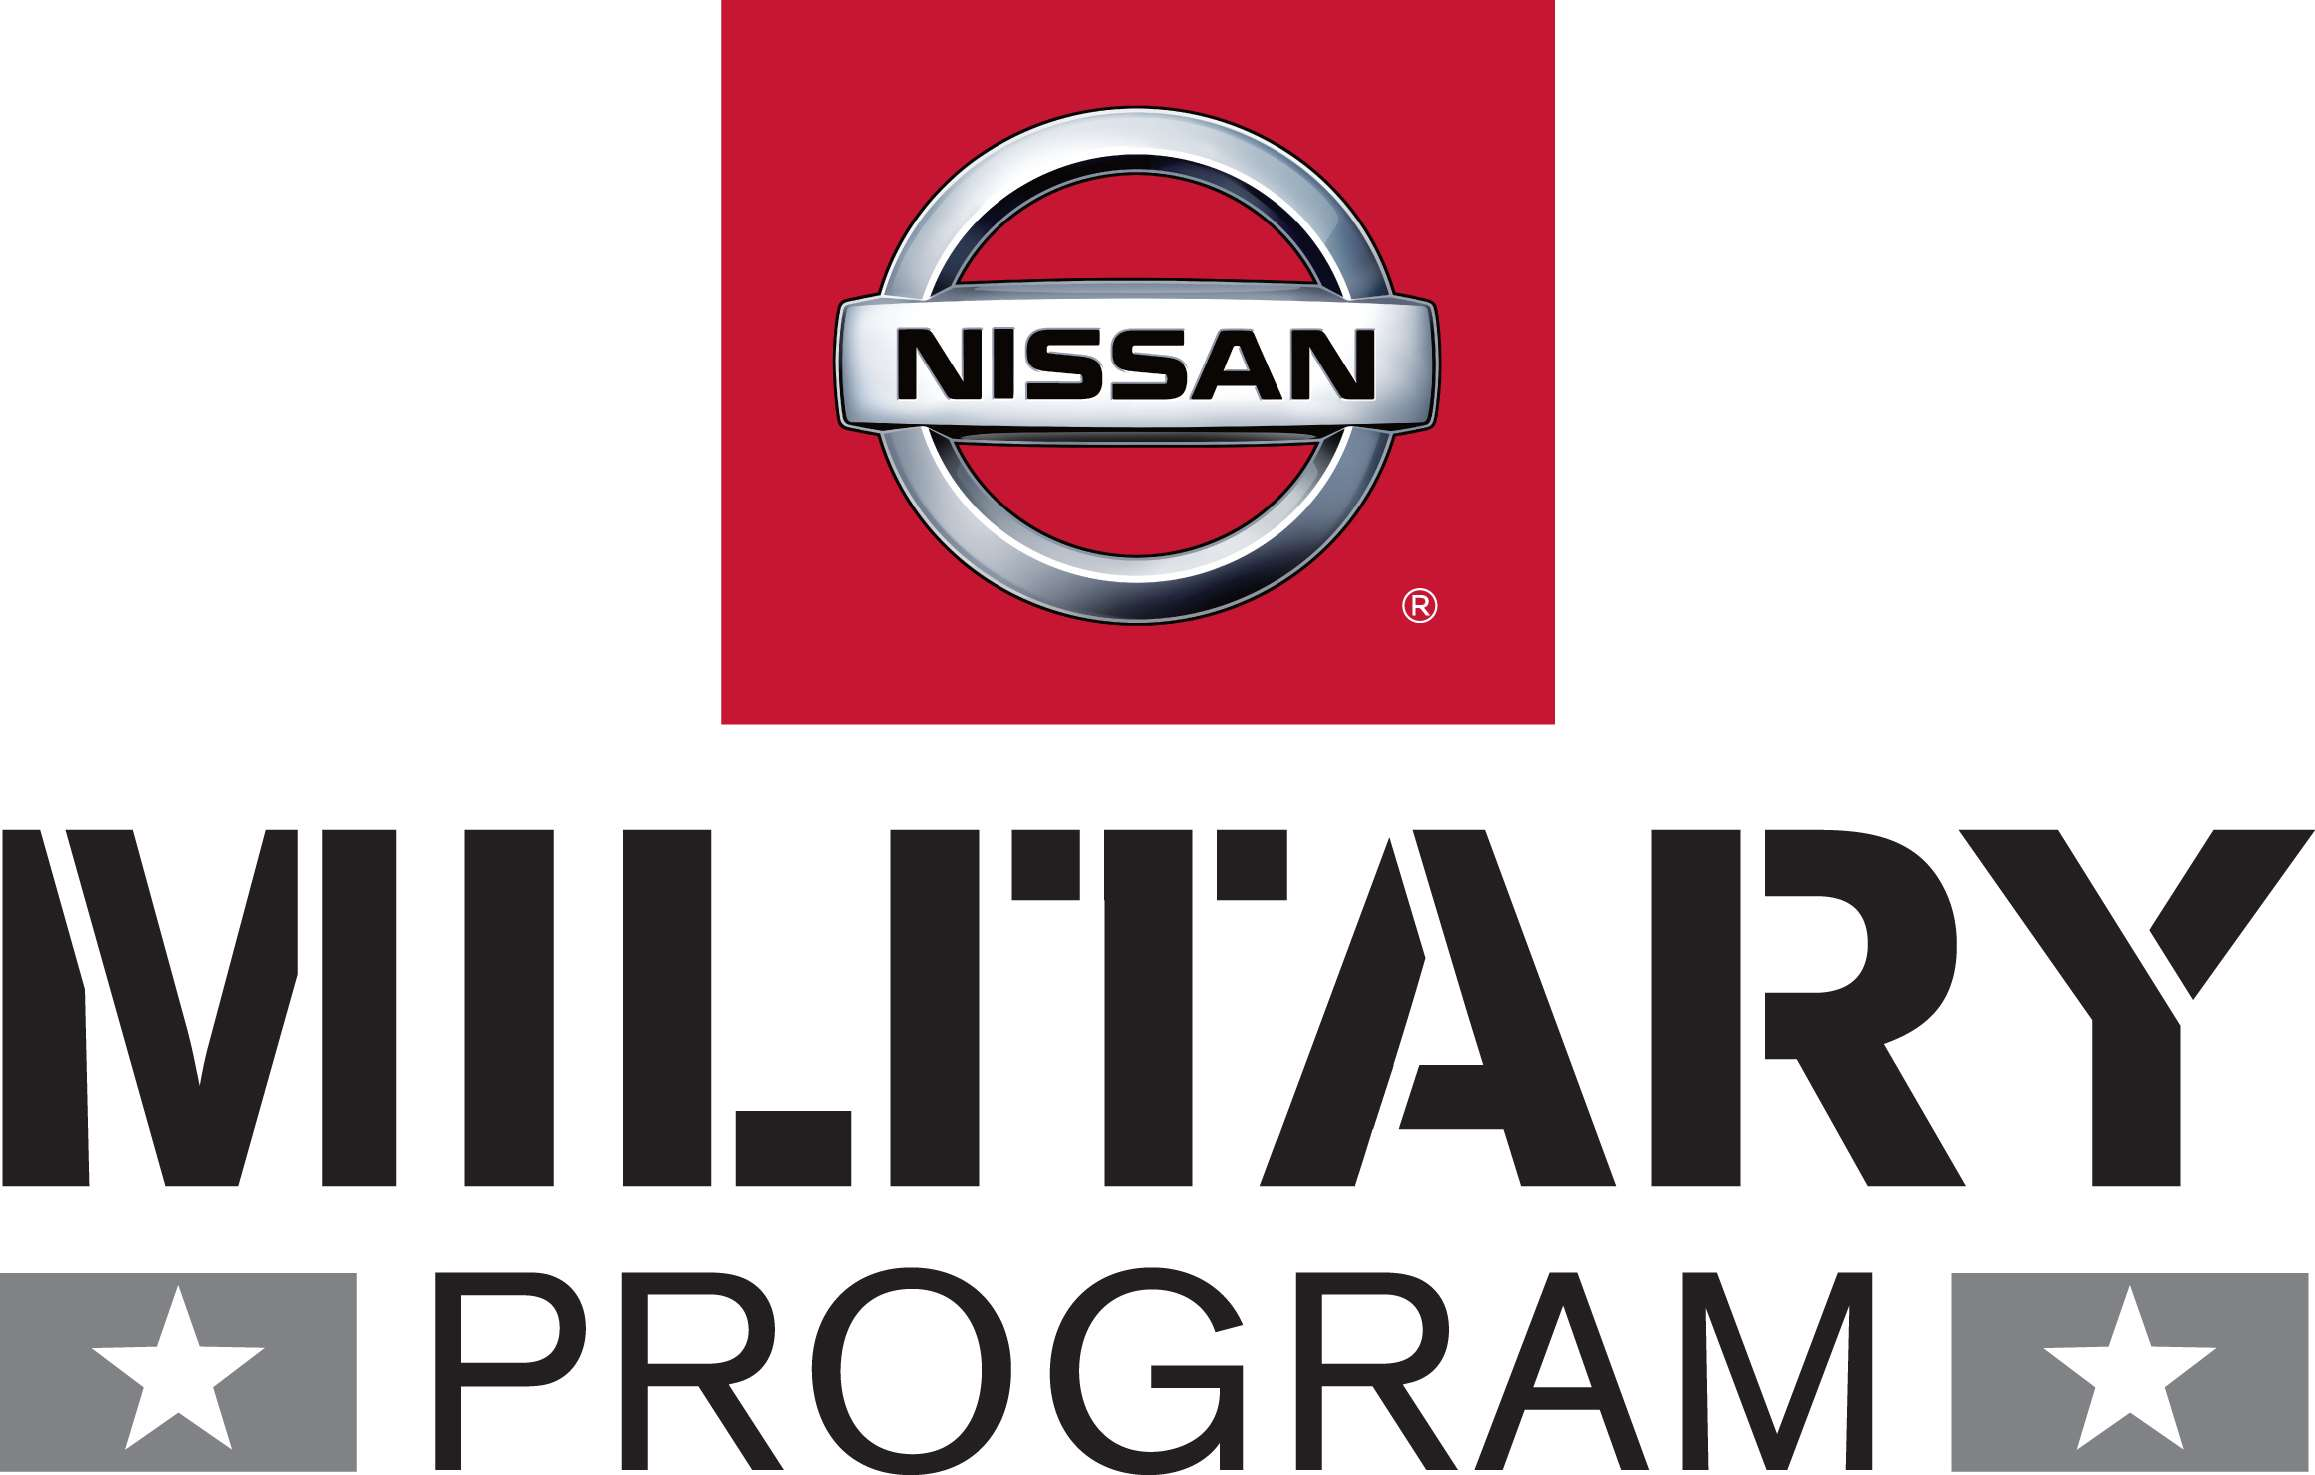 Military Program from Nissan